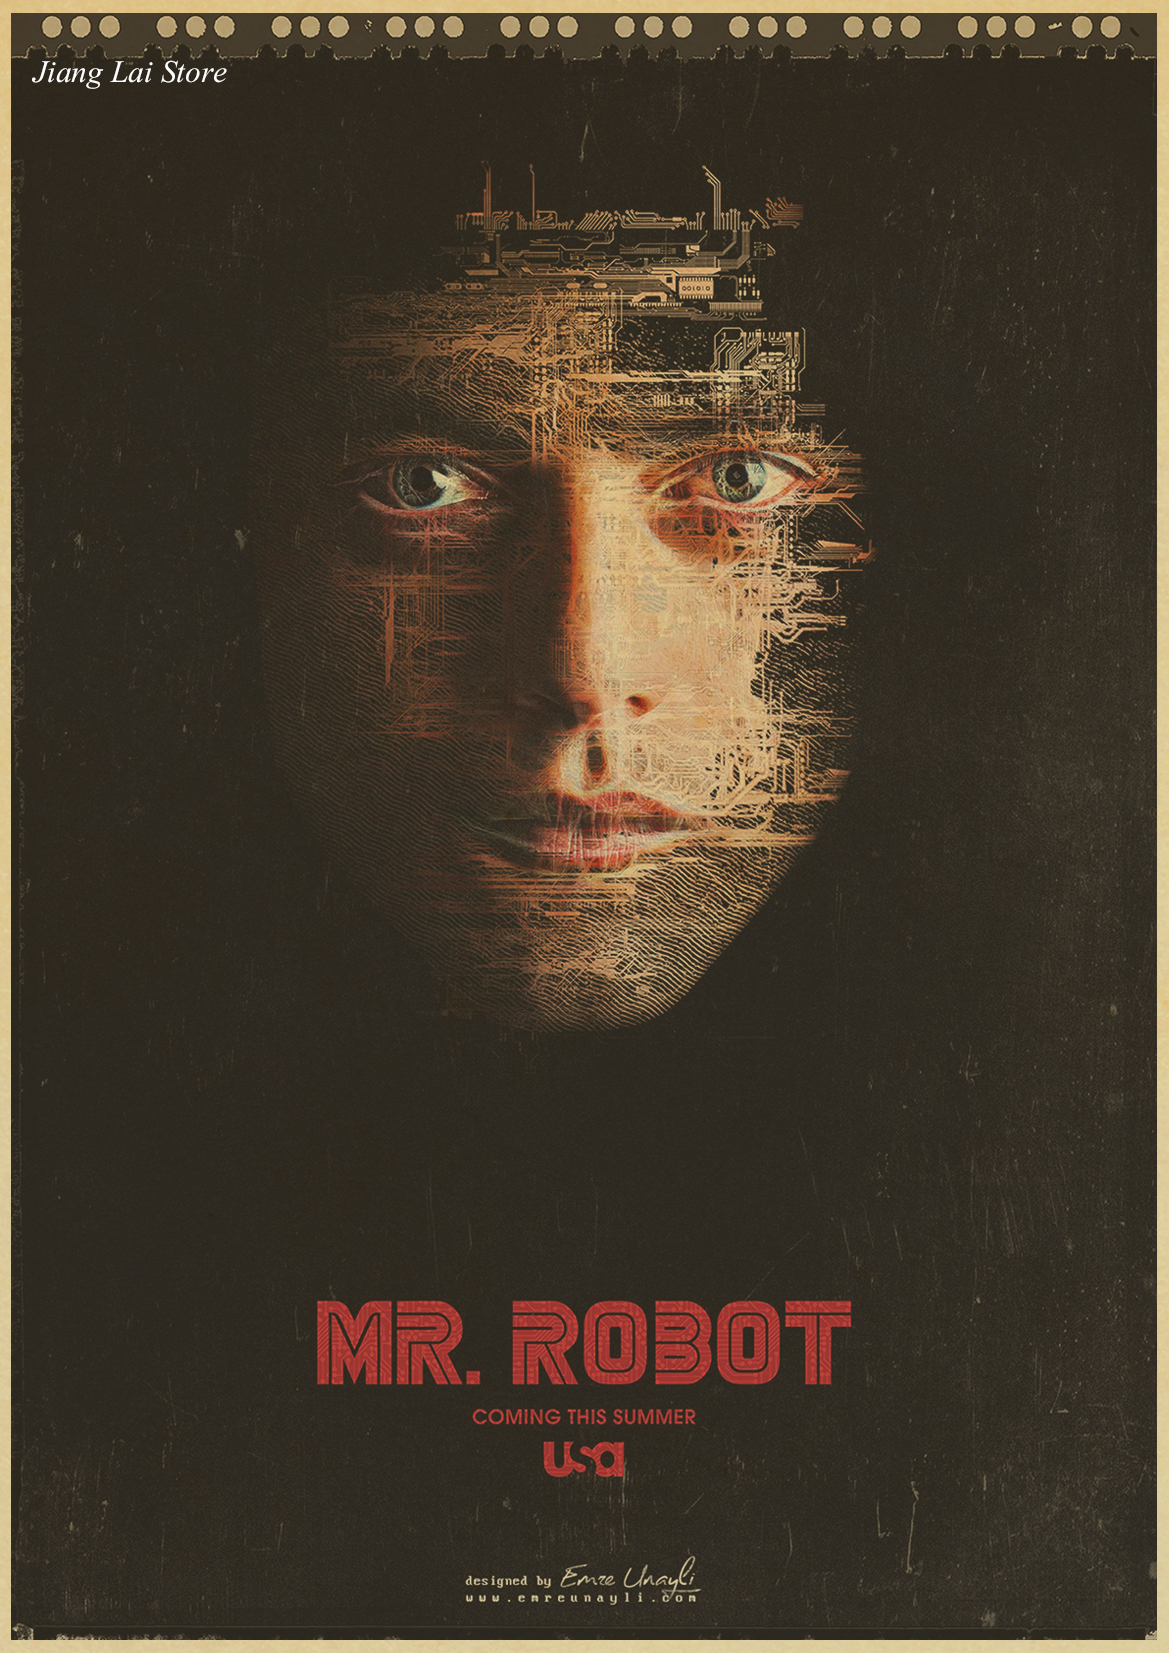 Mr robot TV movie hot film kraft paper retro Poster vintage paintings home decor